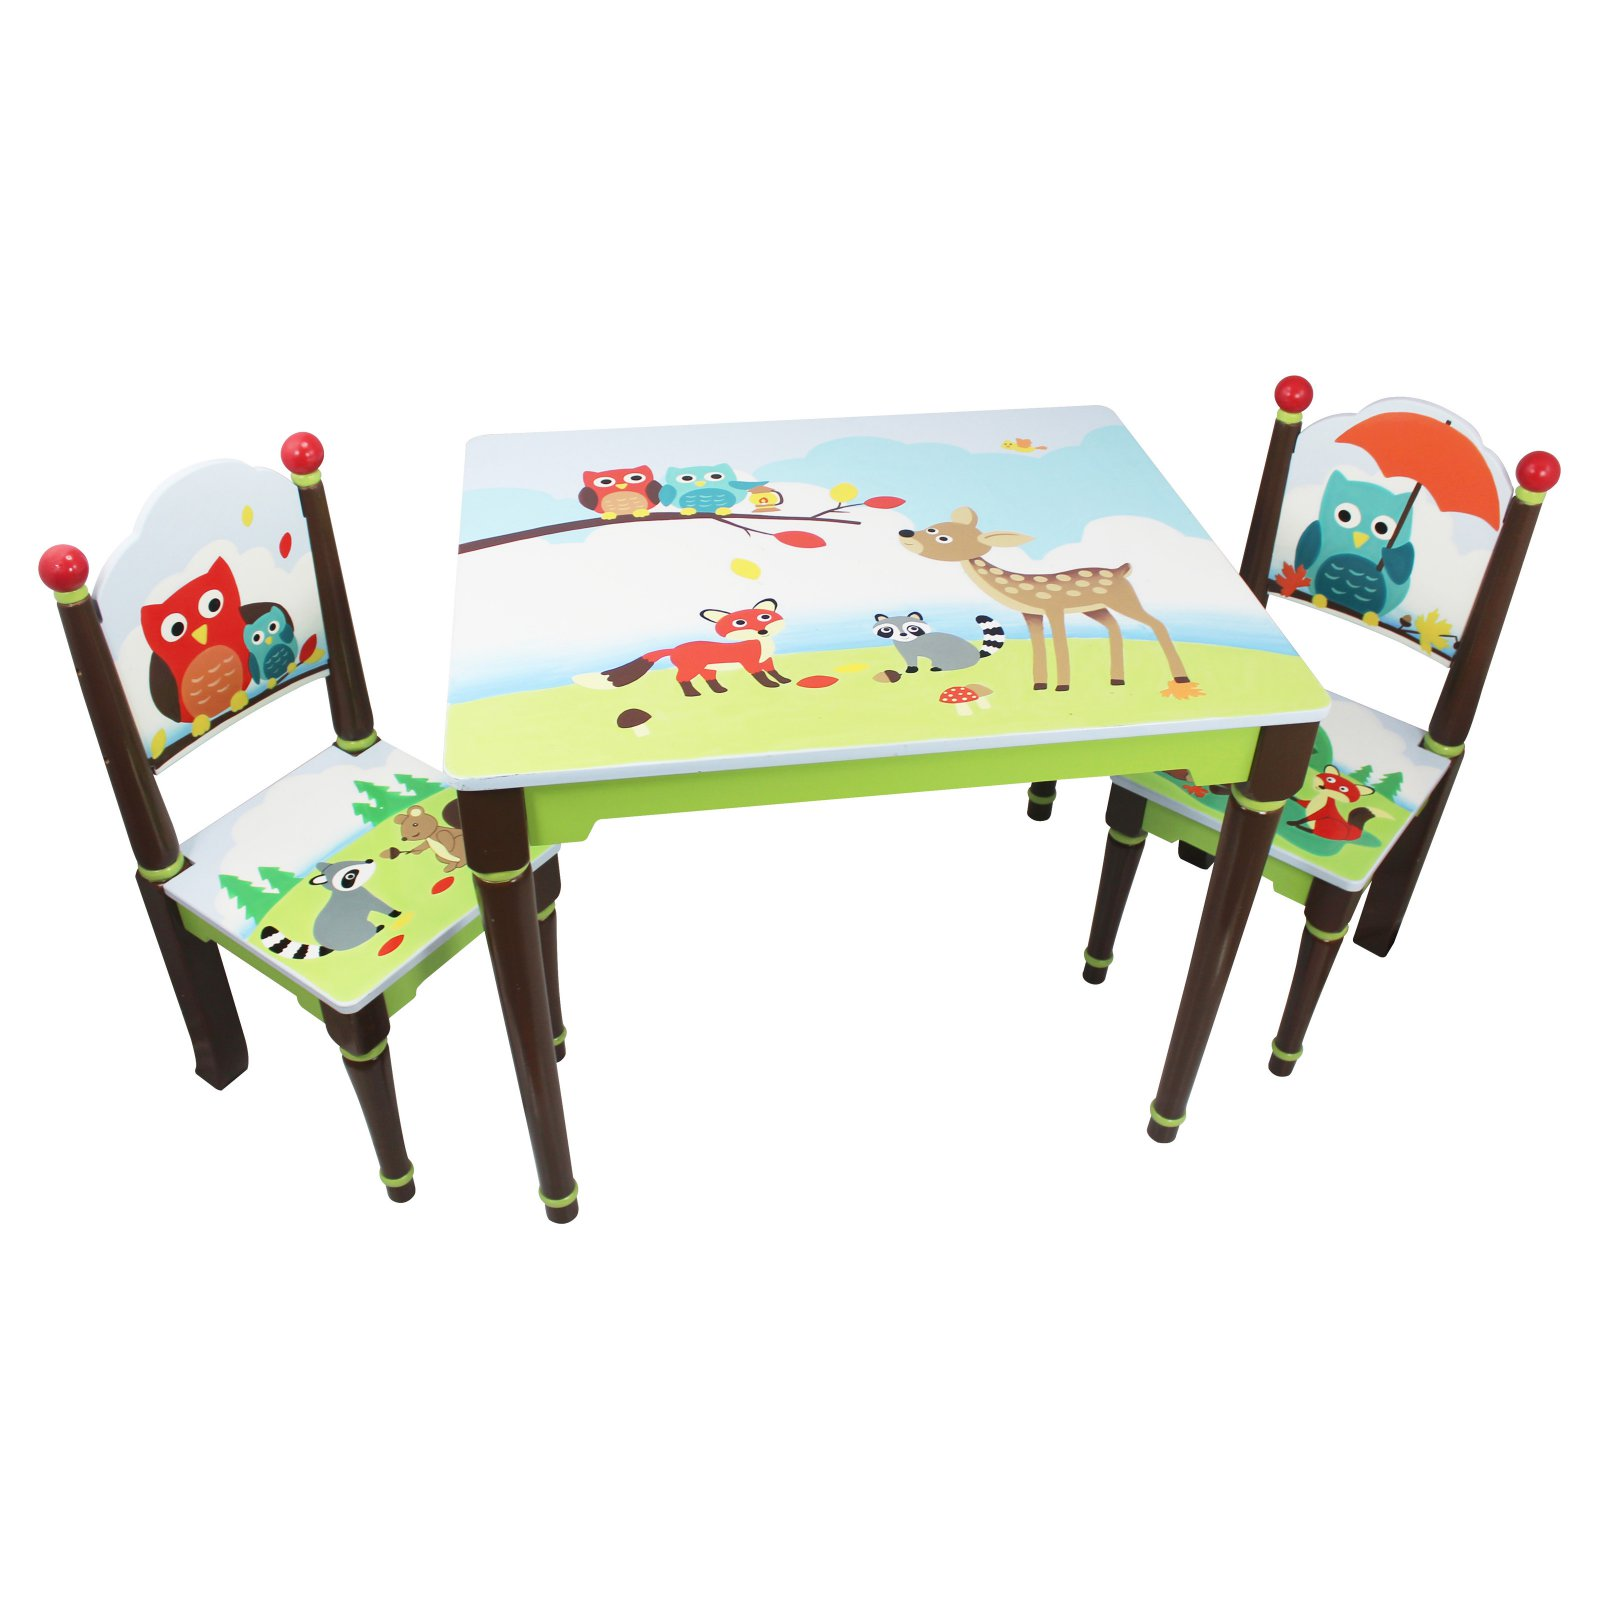 Fantasy Fields- Enchanted Woodland Table & Set of 2 Chairs by Teamson Design